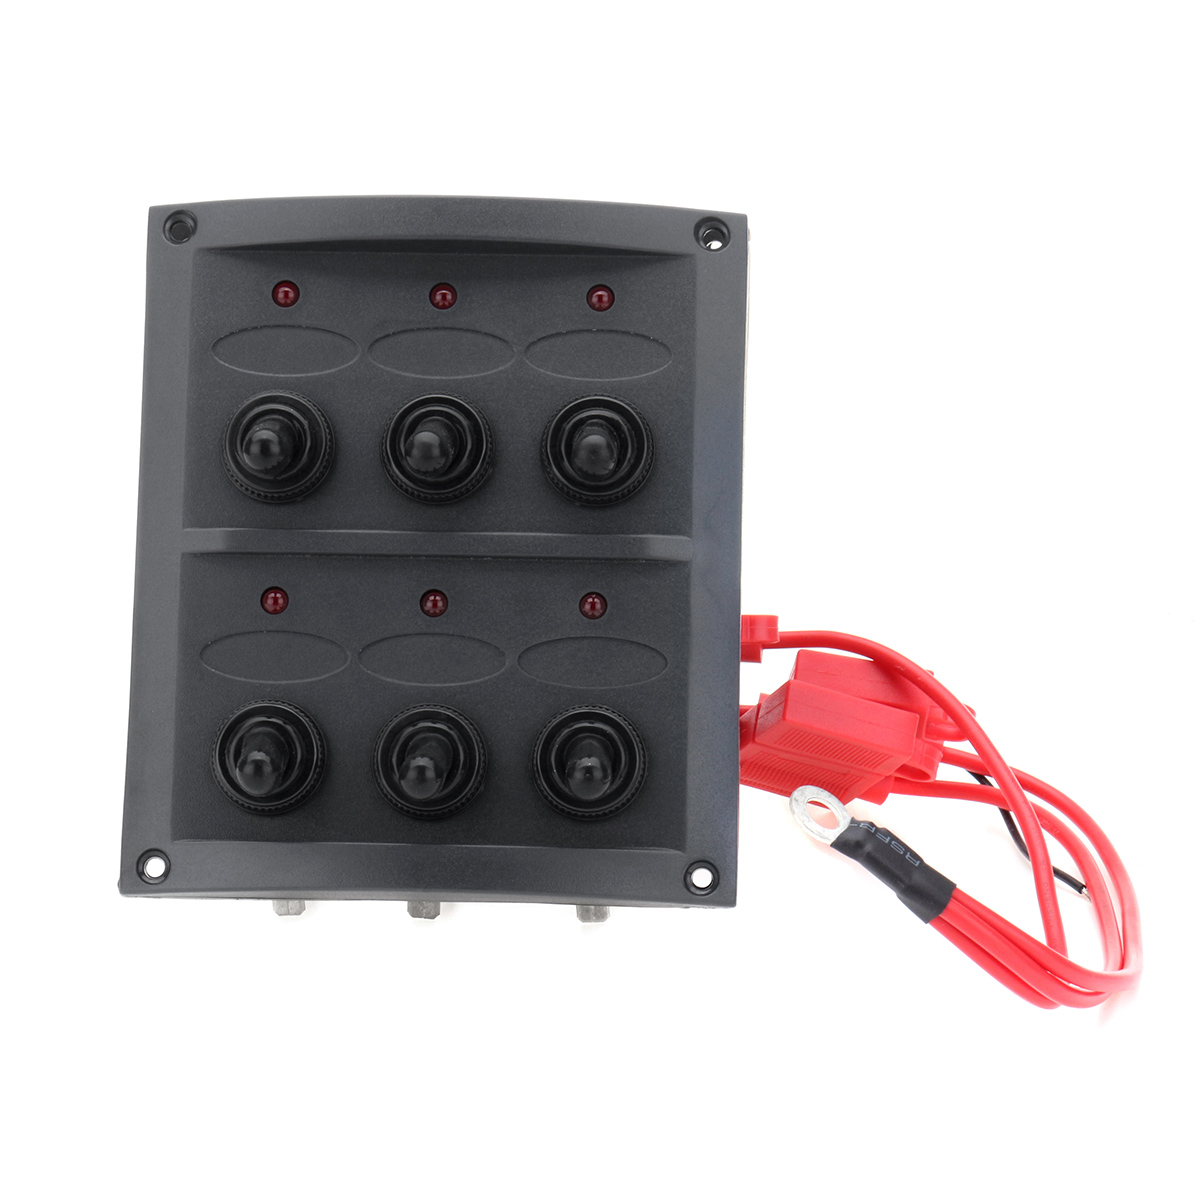 Fuse Box Switch Is Red : Dc v gang toggle switch panel red led light a blade